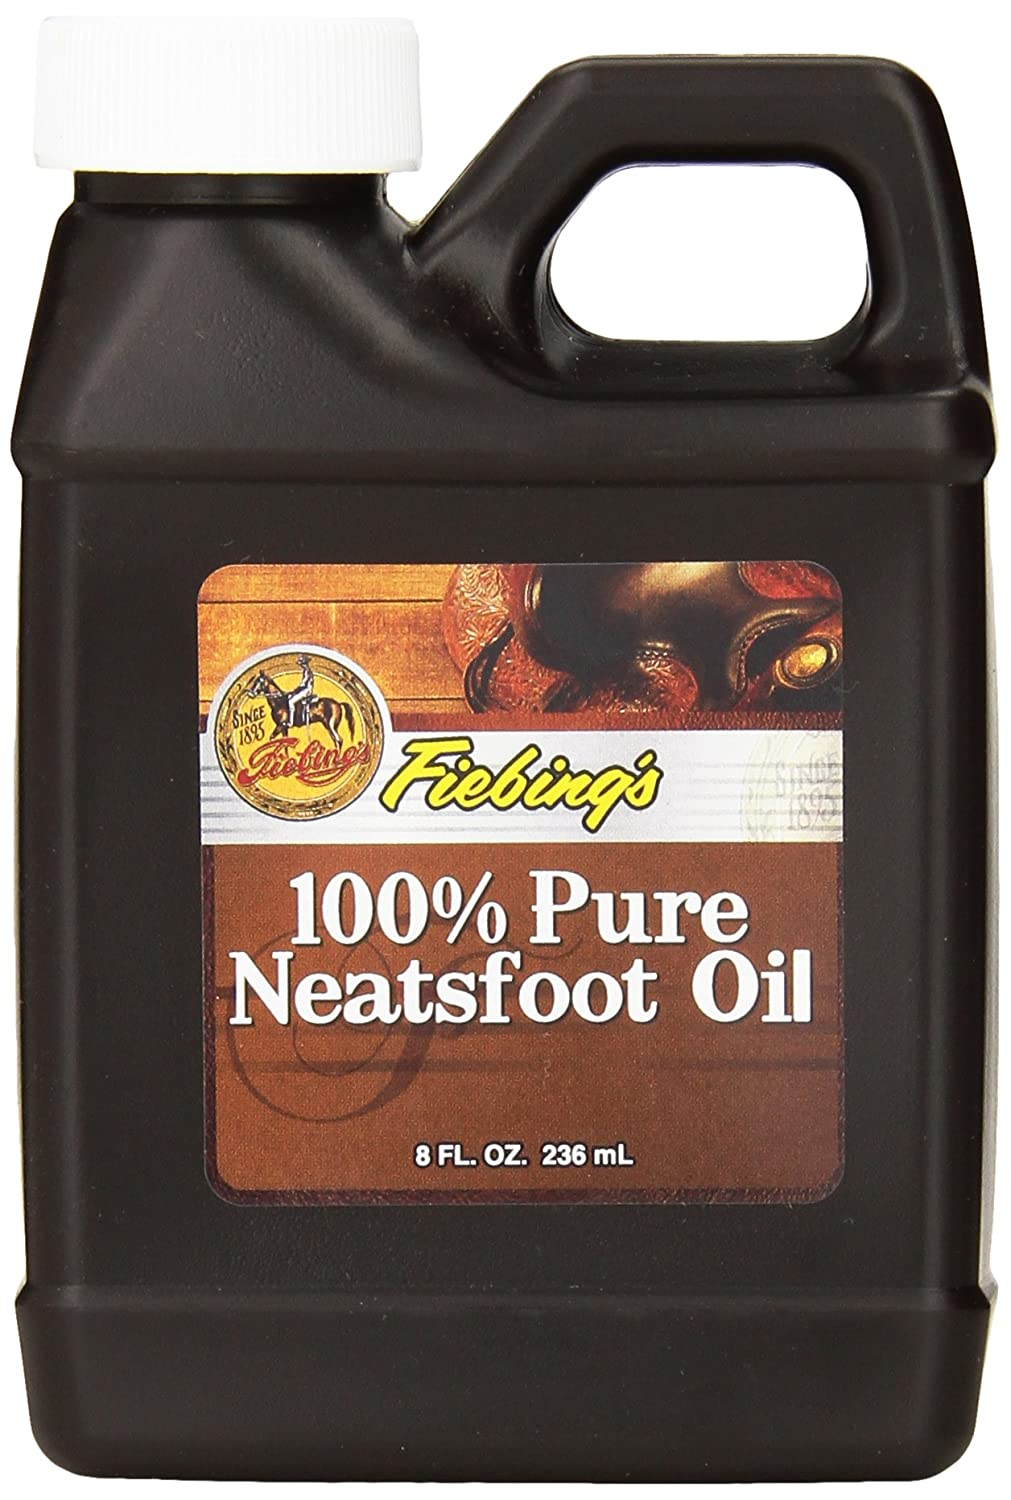 Fiebing's Pure Neatsfoot Oil, 8 oz